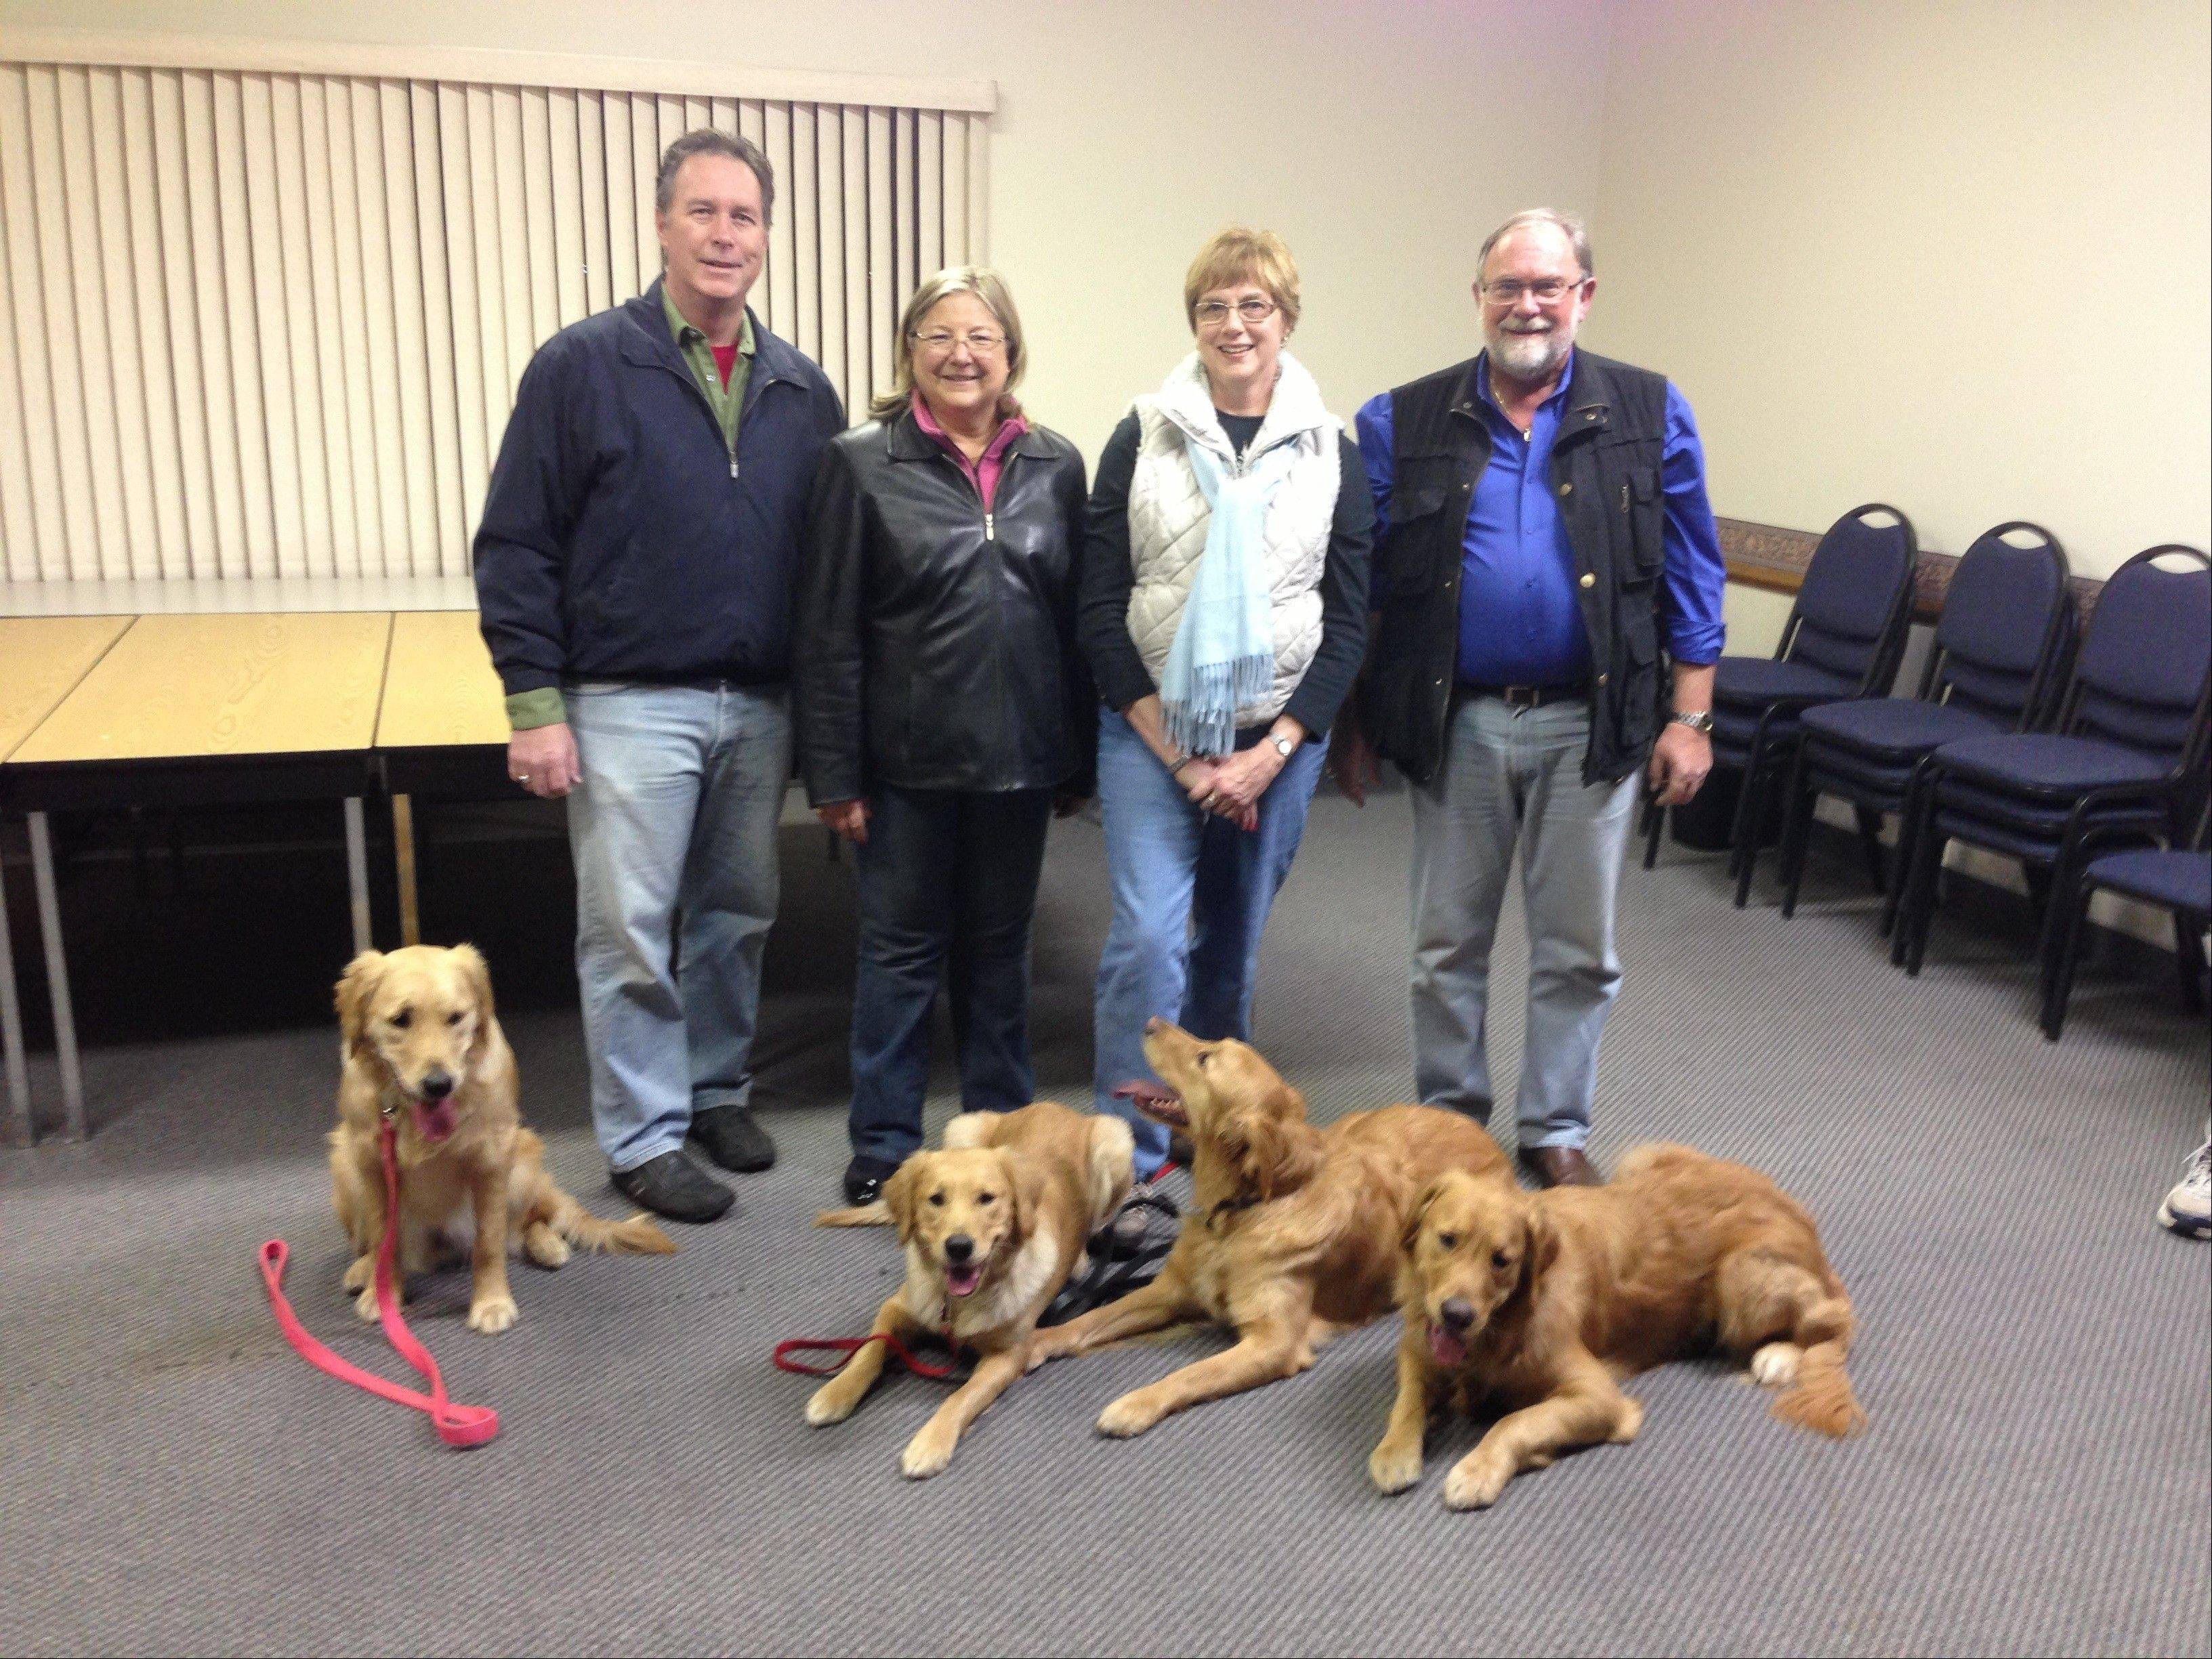 Lutheran Church Charities staff members, pictured from left, Tim Kurth of Wheaton, Dona Martin of Lake Barrington, Lynn Buhrke of Palatine, and Tim Hetzner of Palatine arrived in Newtown, Conn. Saturday with their Comfort Dogs Ministry. The dogs, from left, are Zippy, Ruthie, Chewie and Luther.